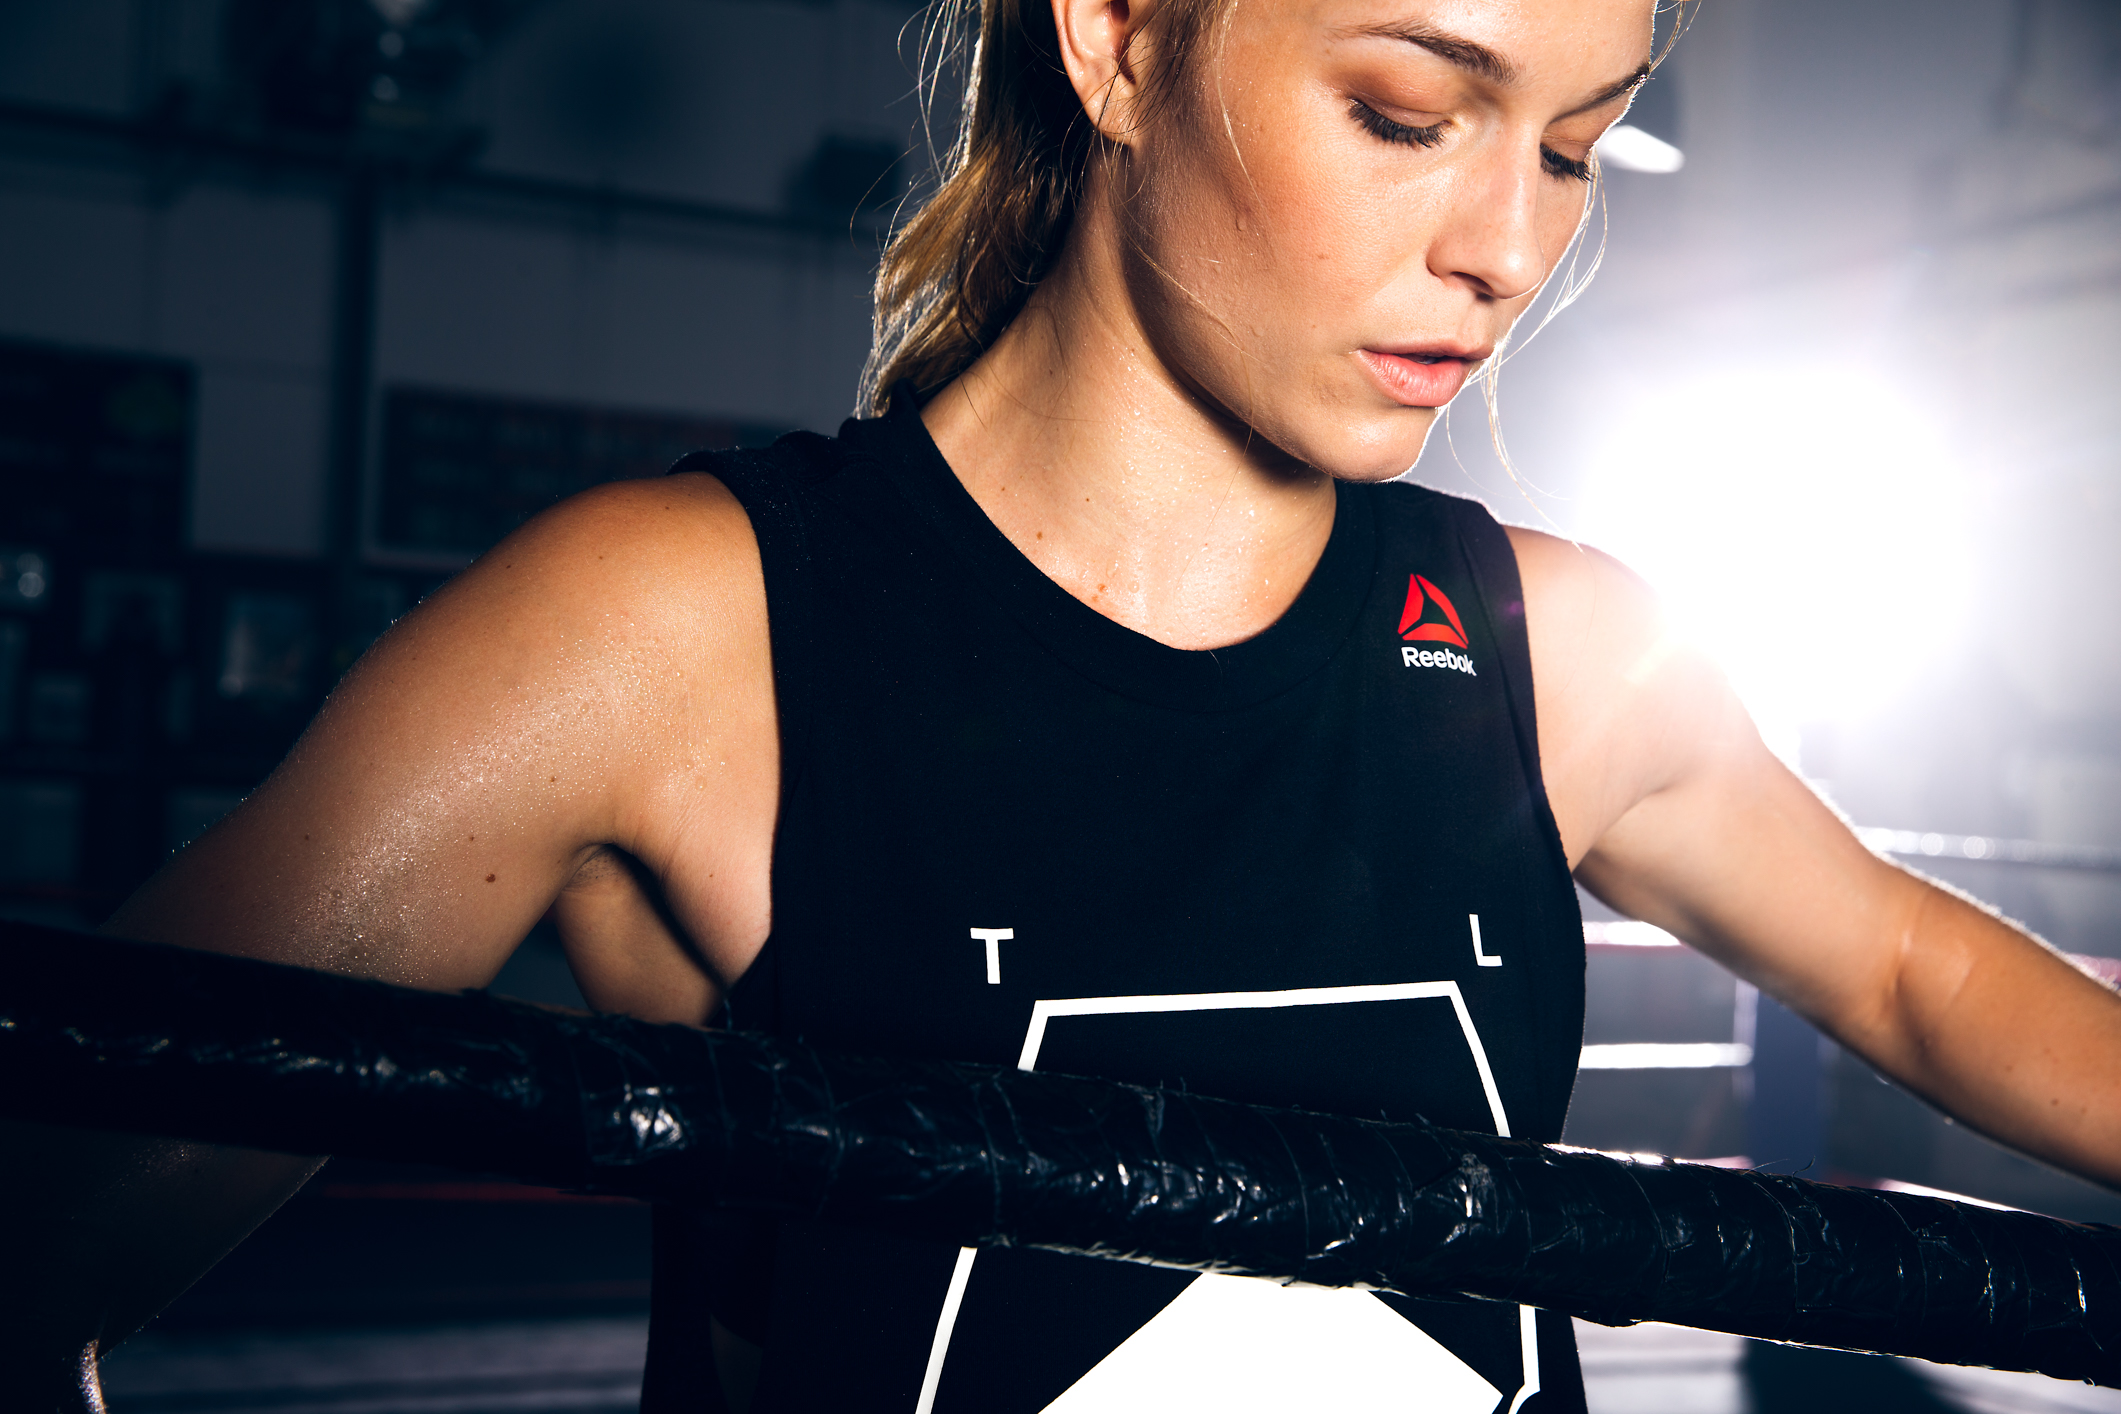 FW15_REEBOK_COMBAT_GYM_2_DS_2027-Edit